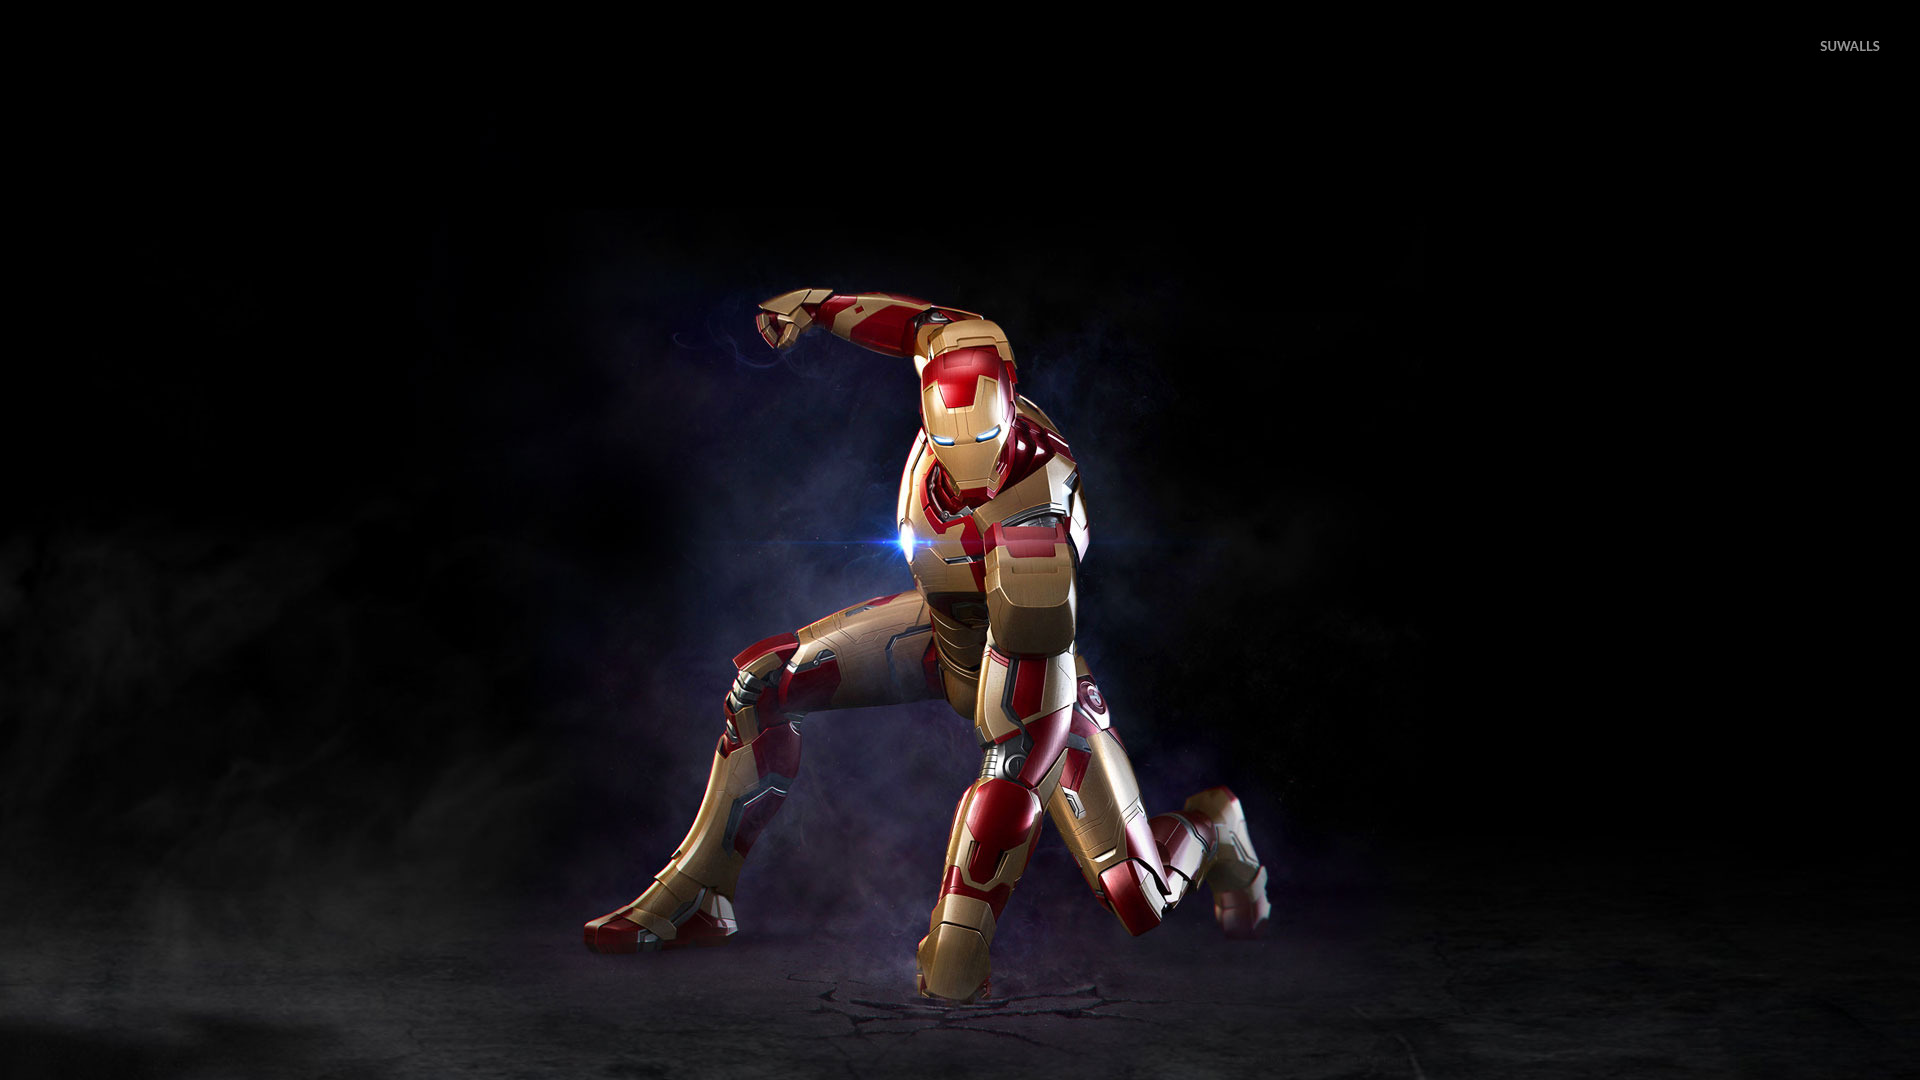 Iron Man Live Wallpaper Android Apps on Google Play 1920x1080